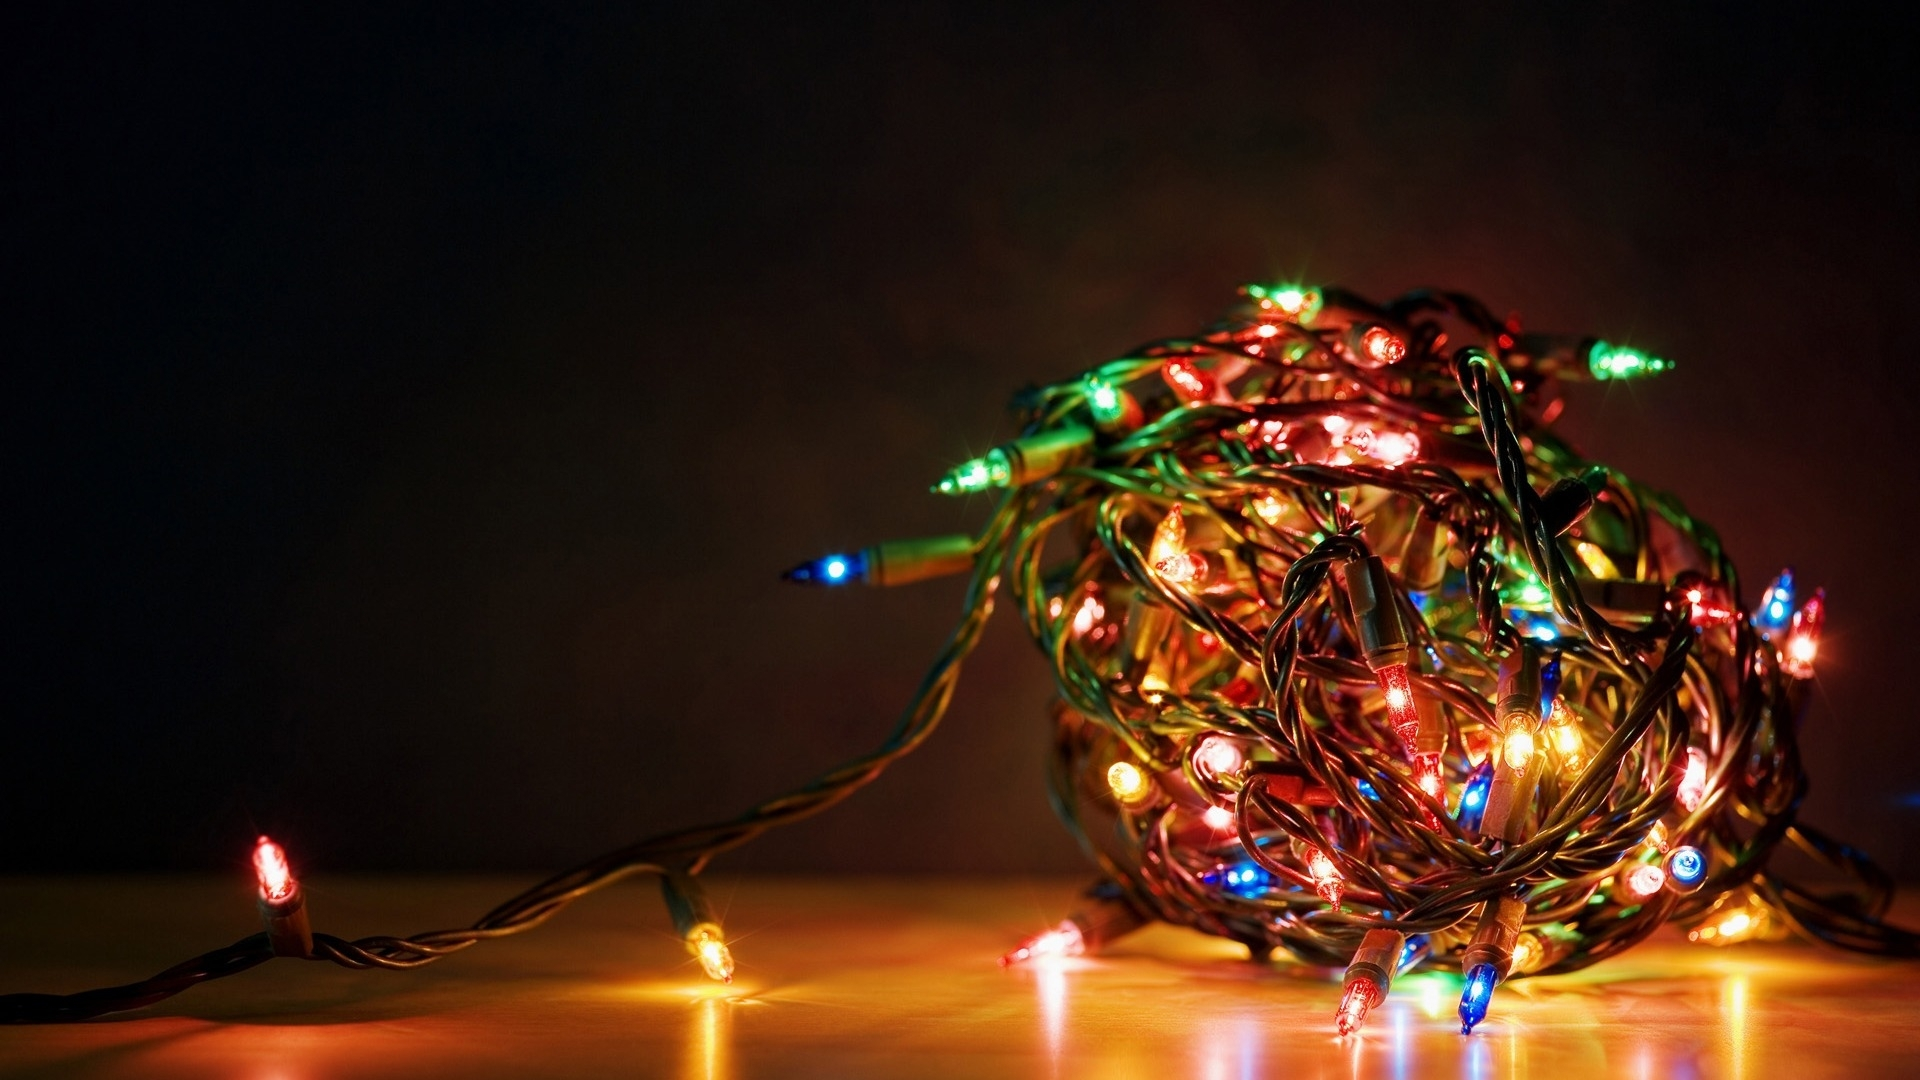 christmas lights wallpapers. - media file | pixelstalk